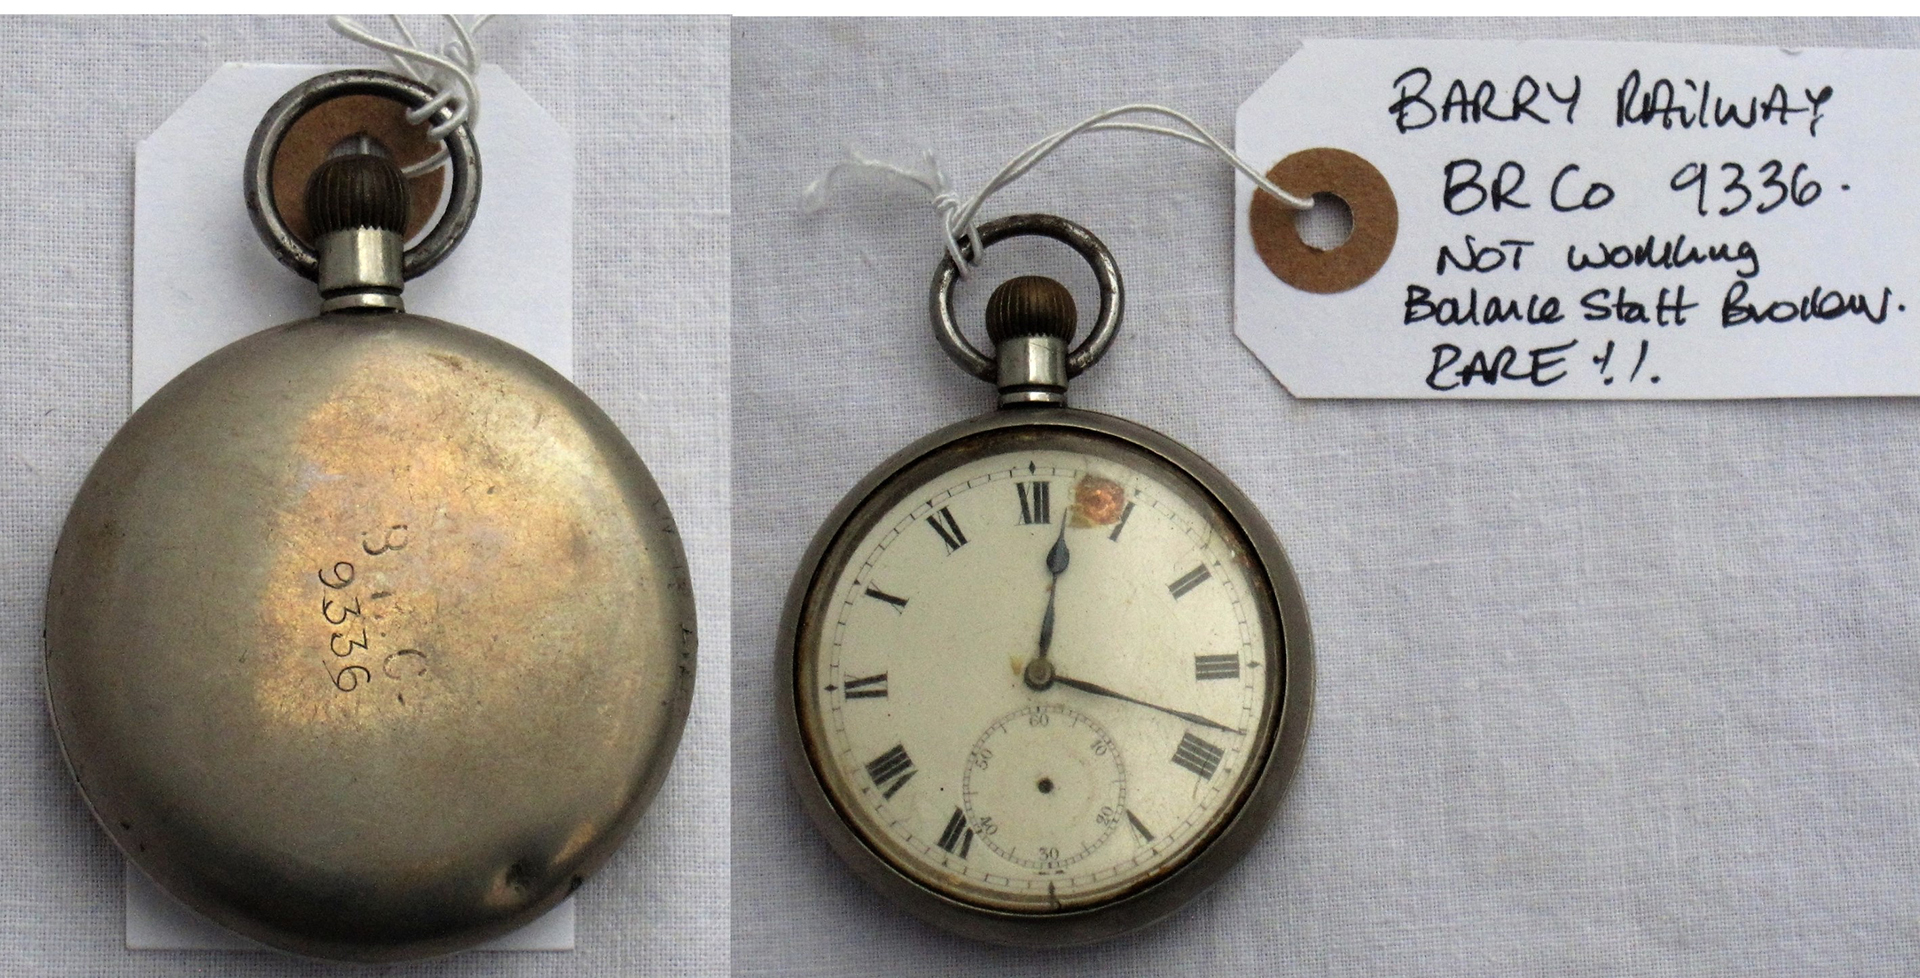 BARRY RAILWAY Guards Watch. Back engraved B.R.Co No 9336. Not working. Balance staff broken. A